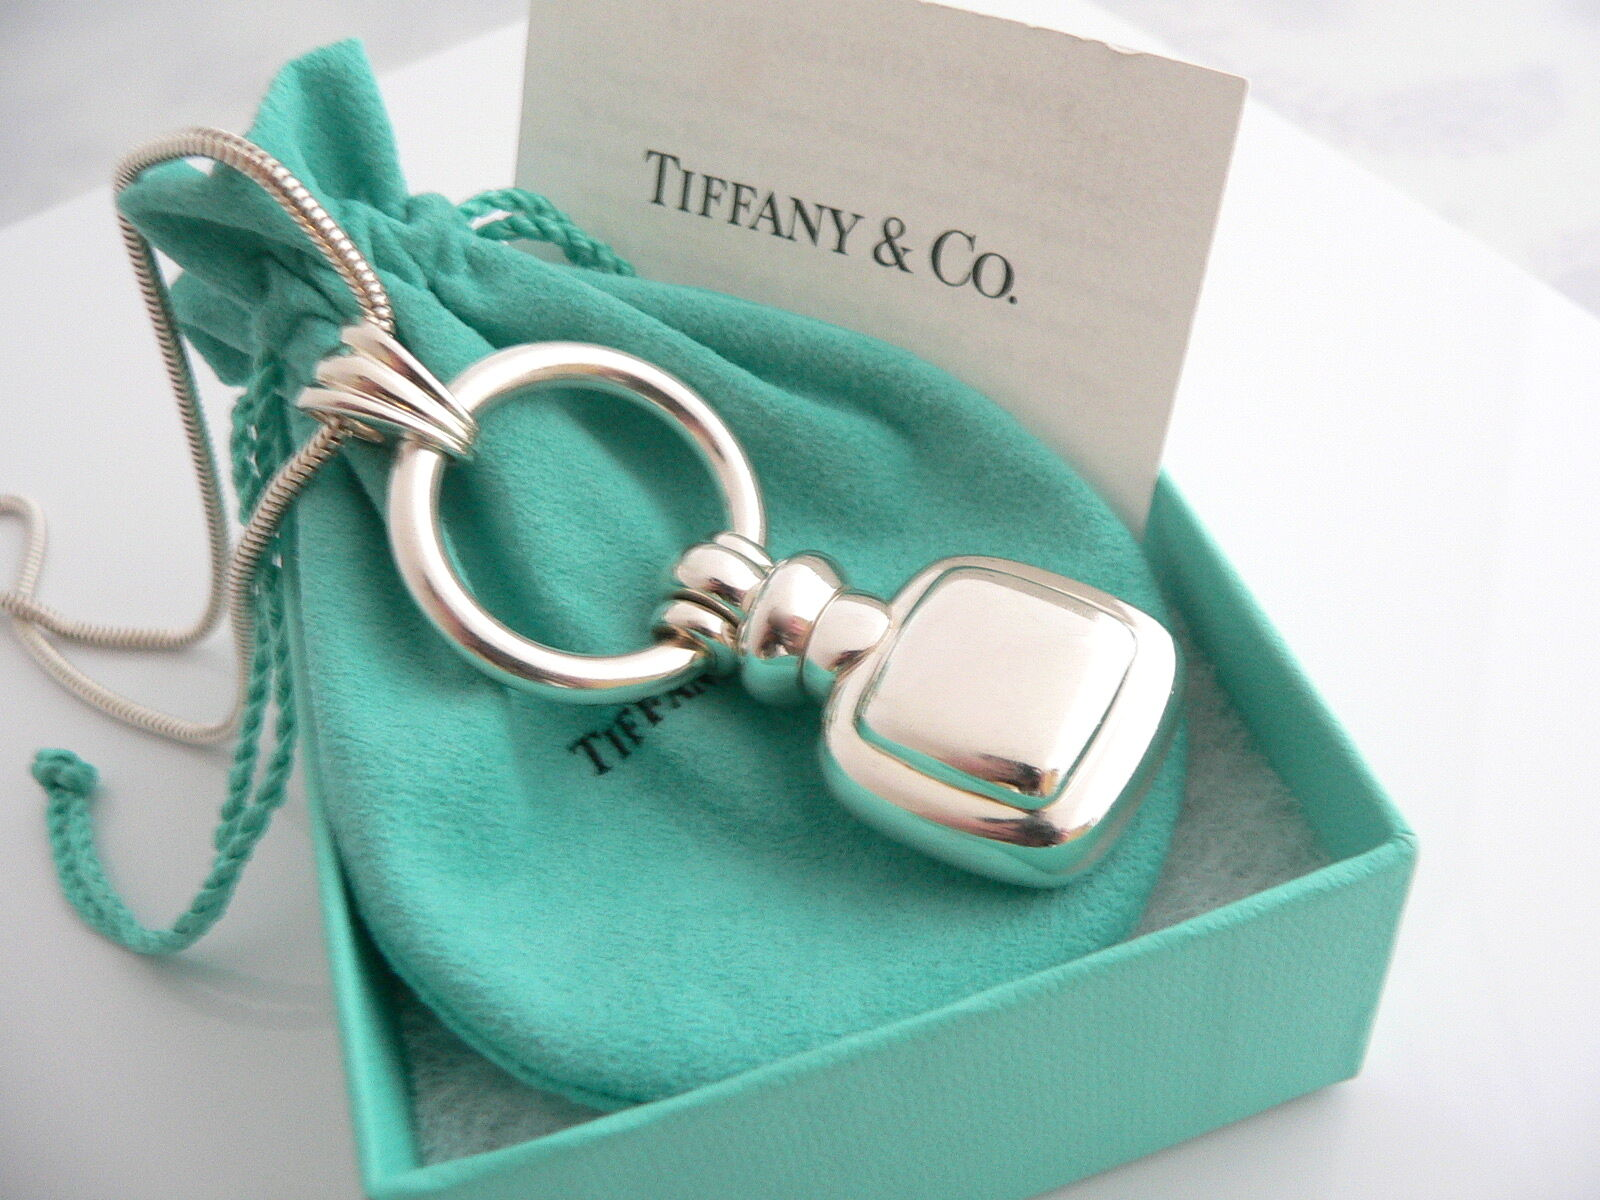 Tiffany & Co Silver Perfume Bottle Necklace Pendant Charm 24 Inch Chain Rare Art